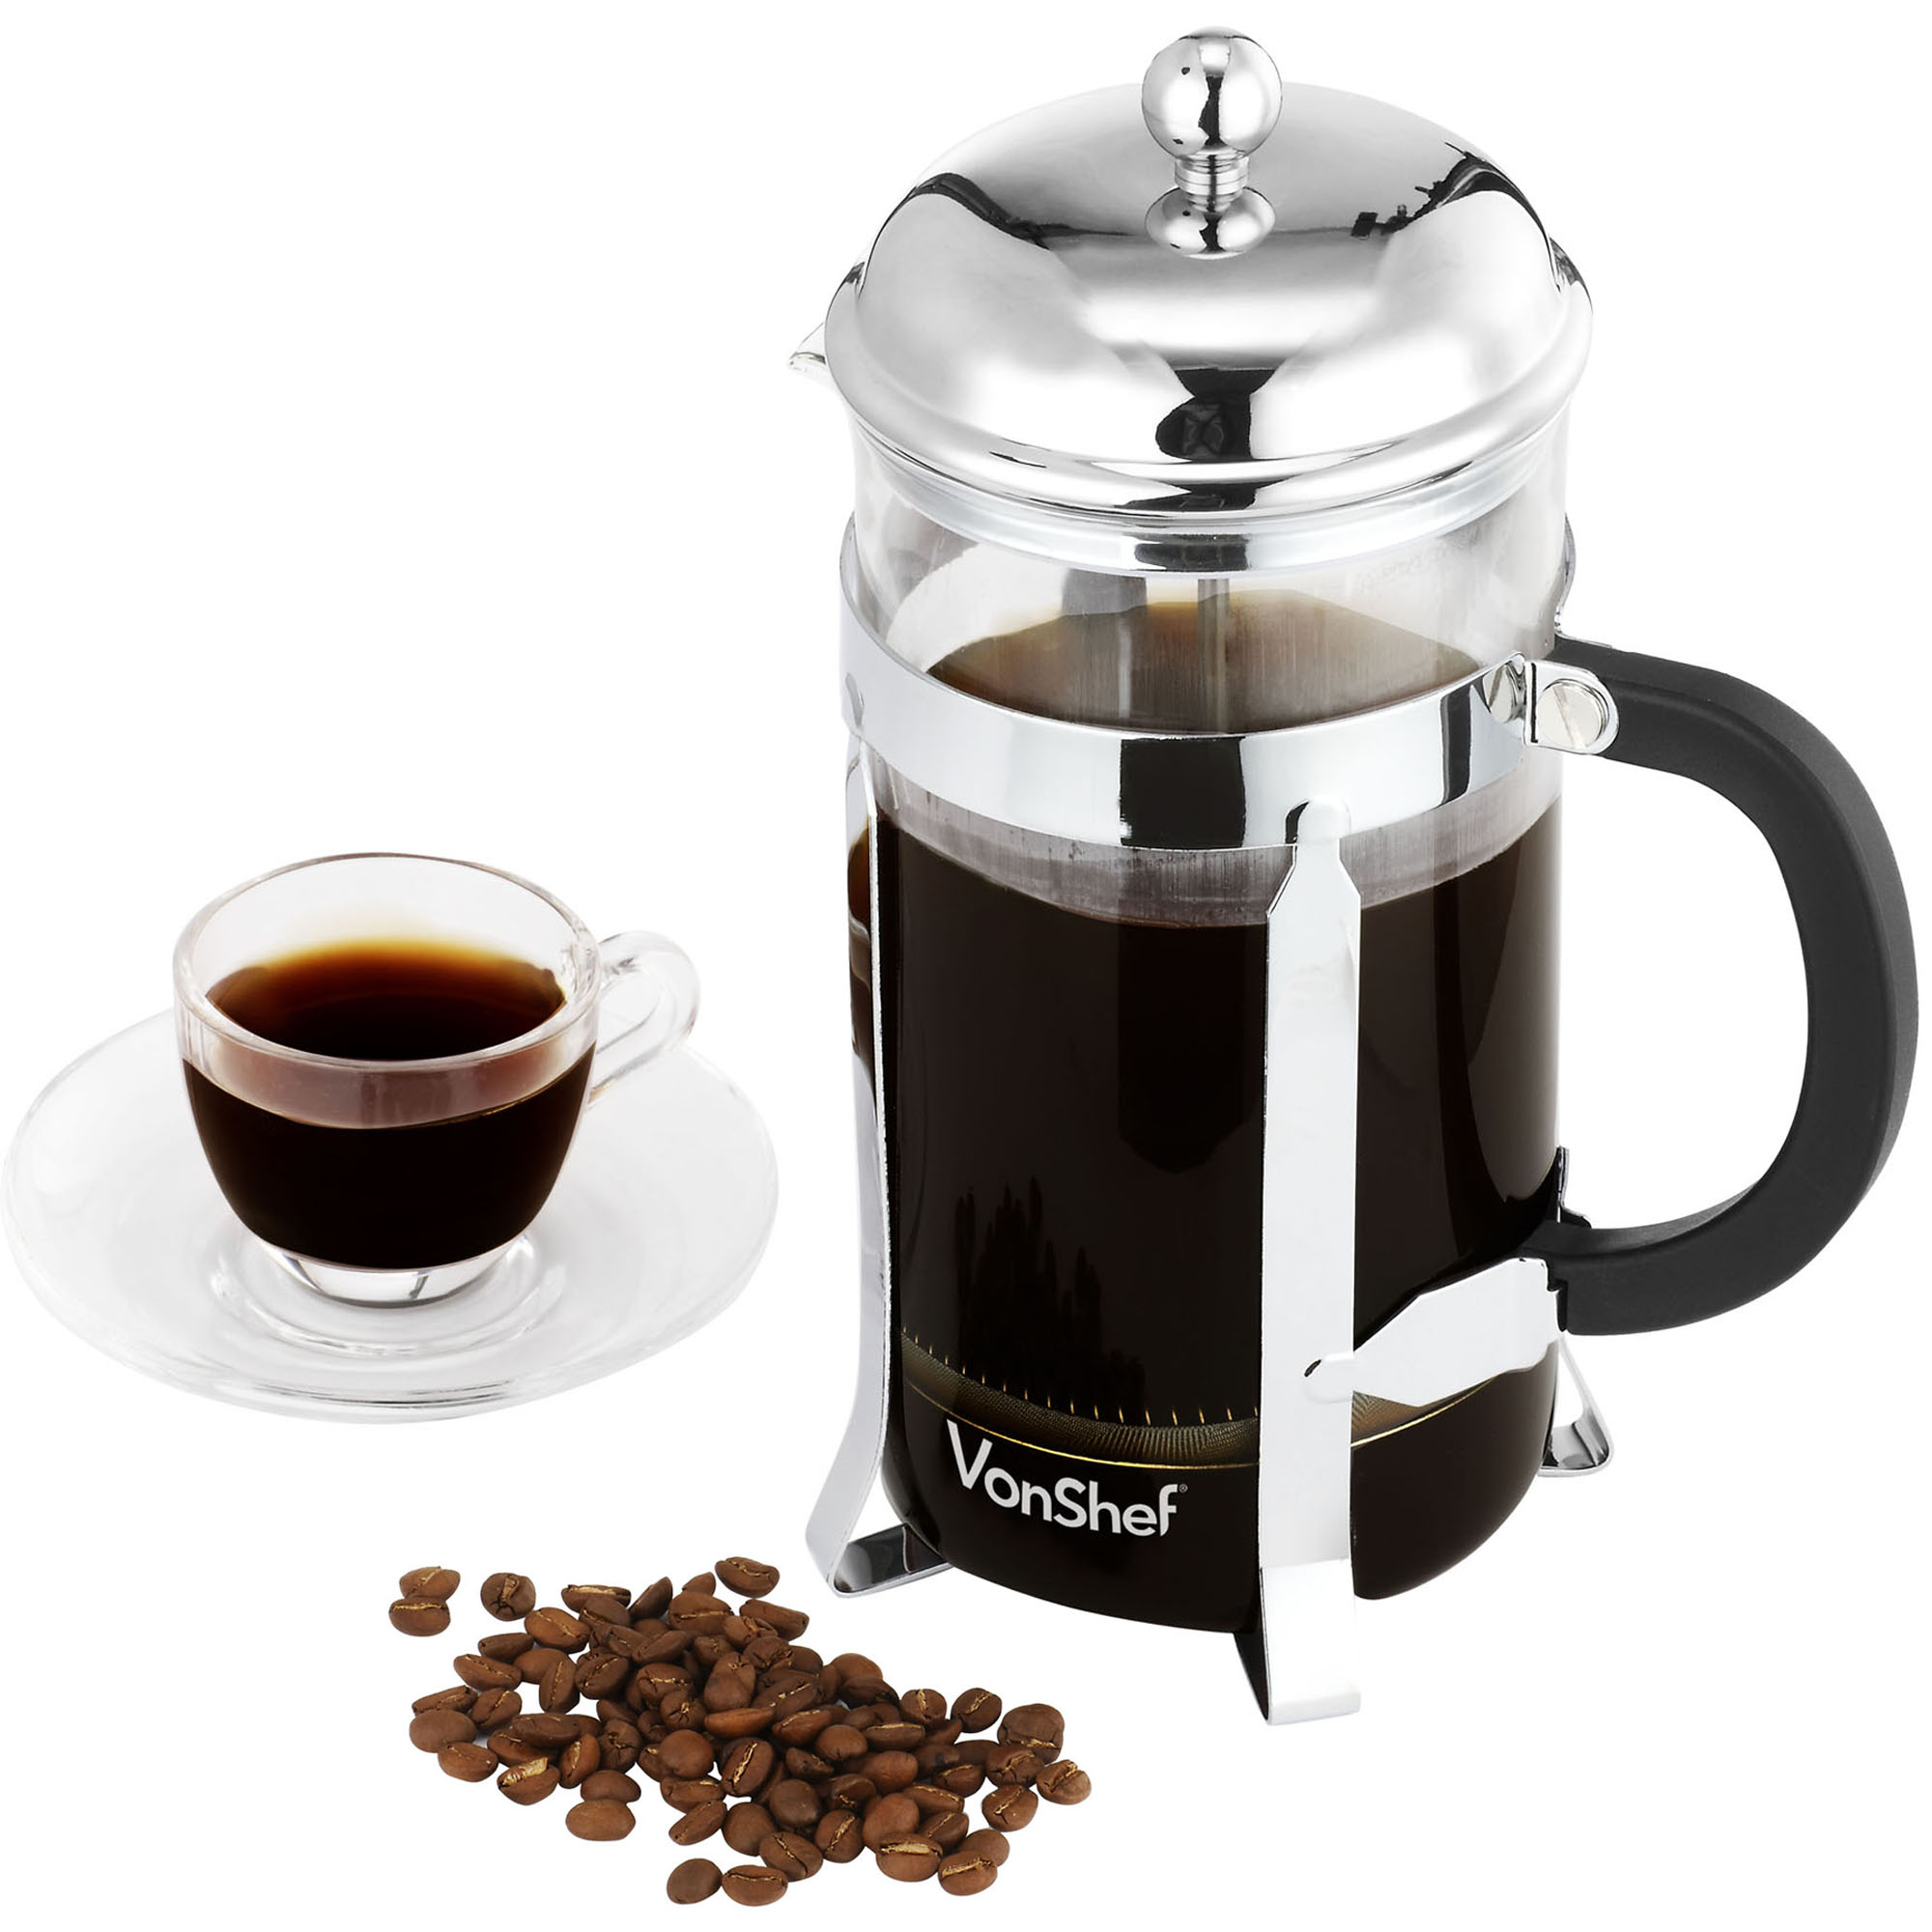 vonshef 8 cup 1 litre french press stainless steel cafetiere filter coffee maker ebay. Black Bedroom Furniture Sets. Home Design Ideas